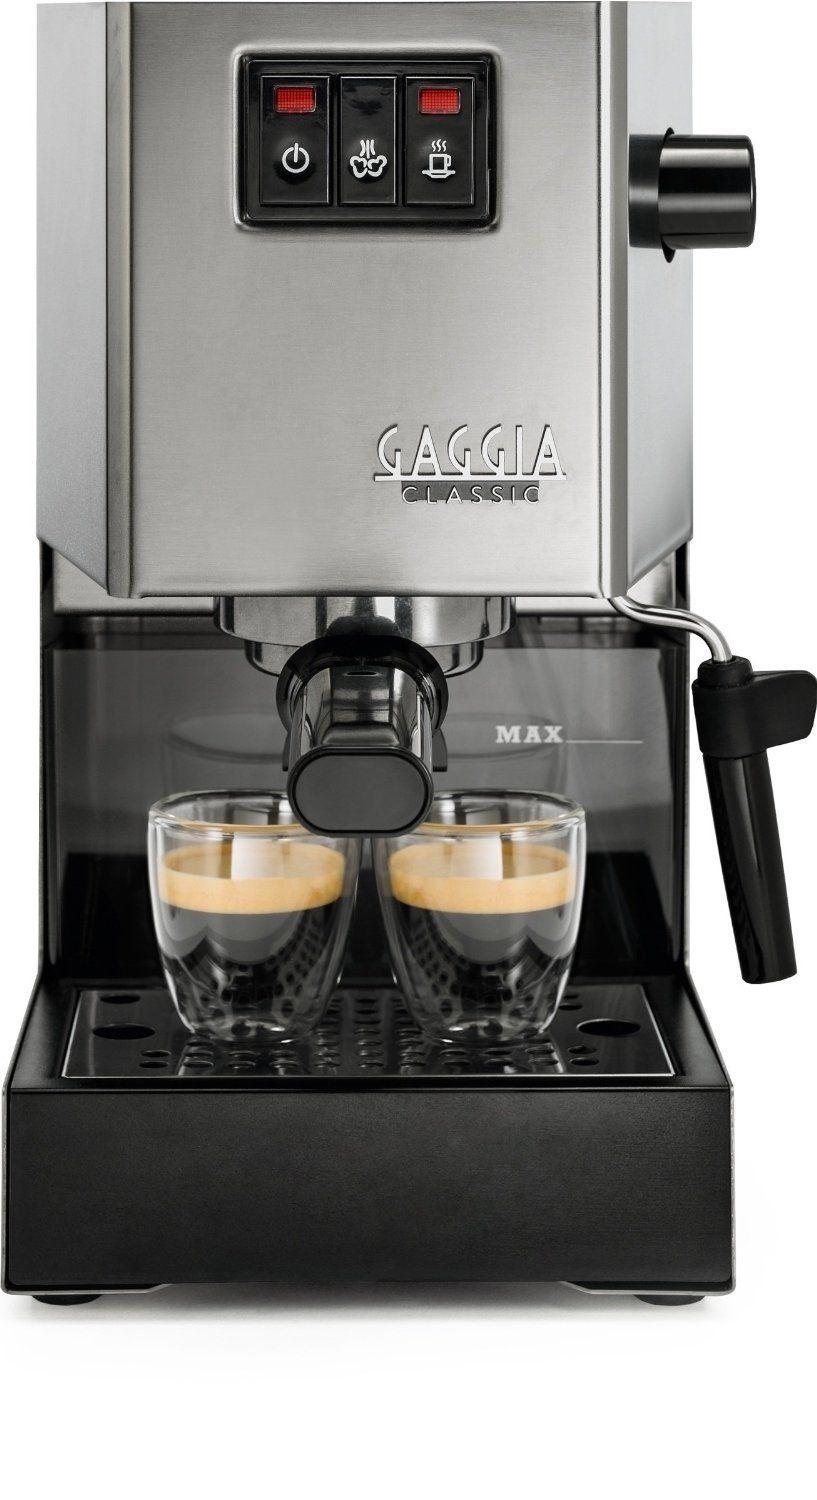 Espresso Machines Reviews 2019 Gaggia, Gaggia classic